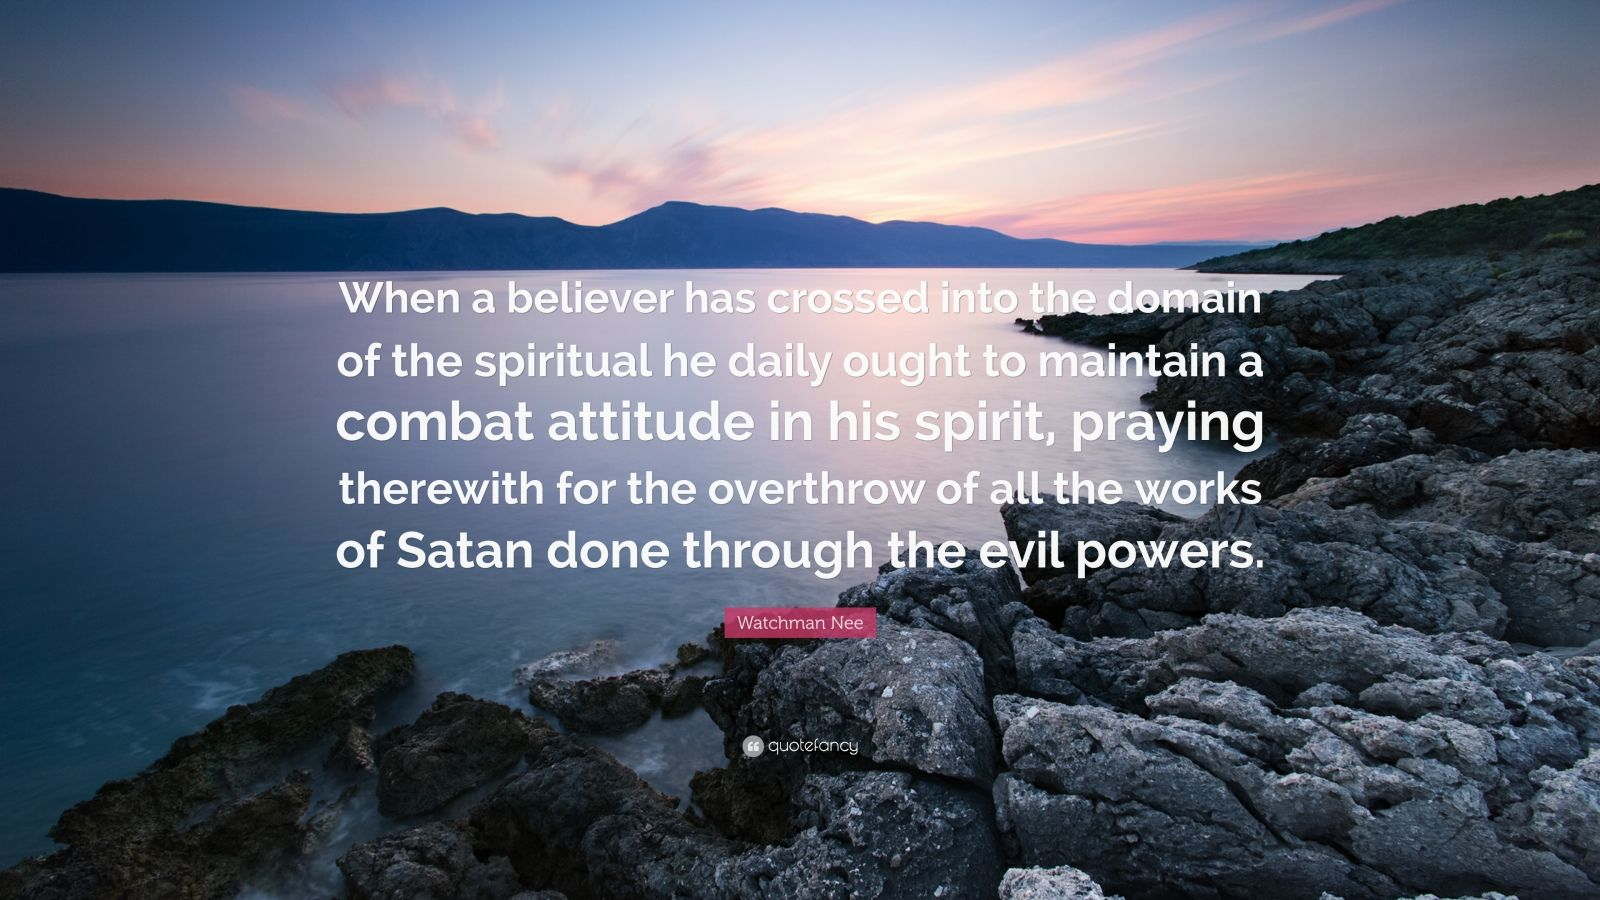 "Watchman Nee Quote: ""When a believer has crossed into the domain of the spiritual he daily ought to maintain a combat attitude in his spirit, praying therewith for the overthrow of all the works of Satan done through the evil powers."""